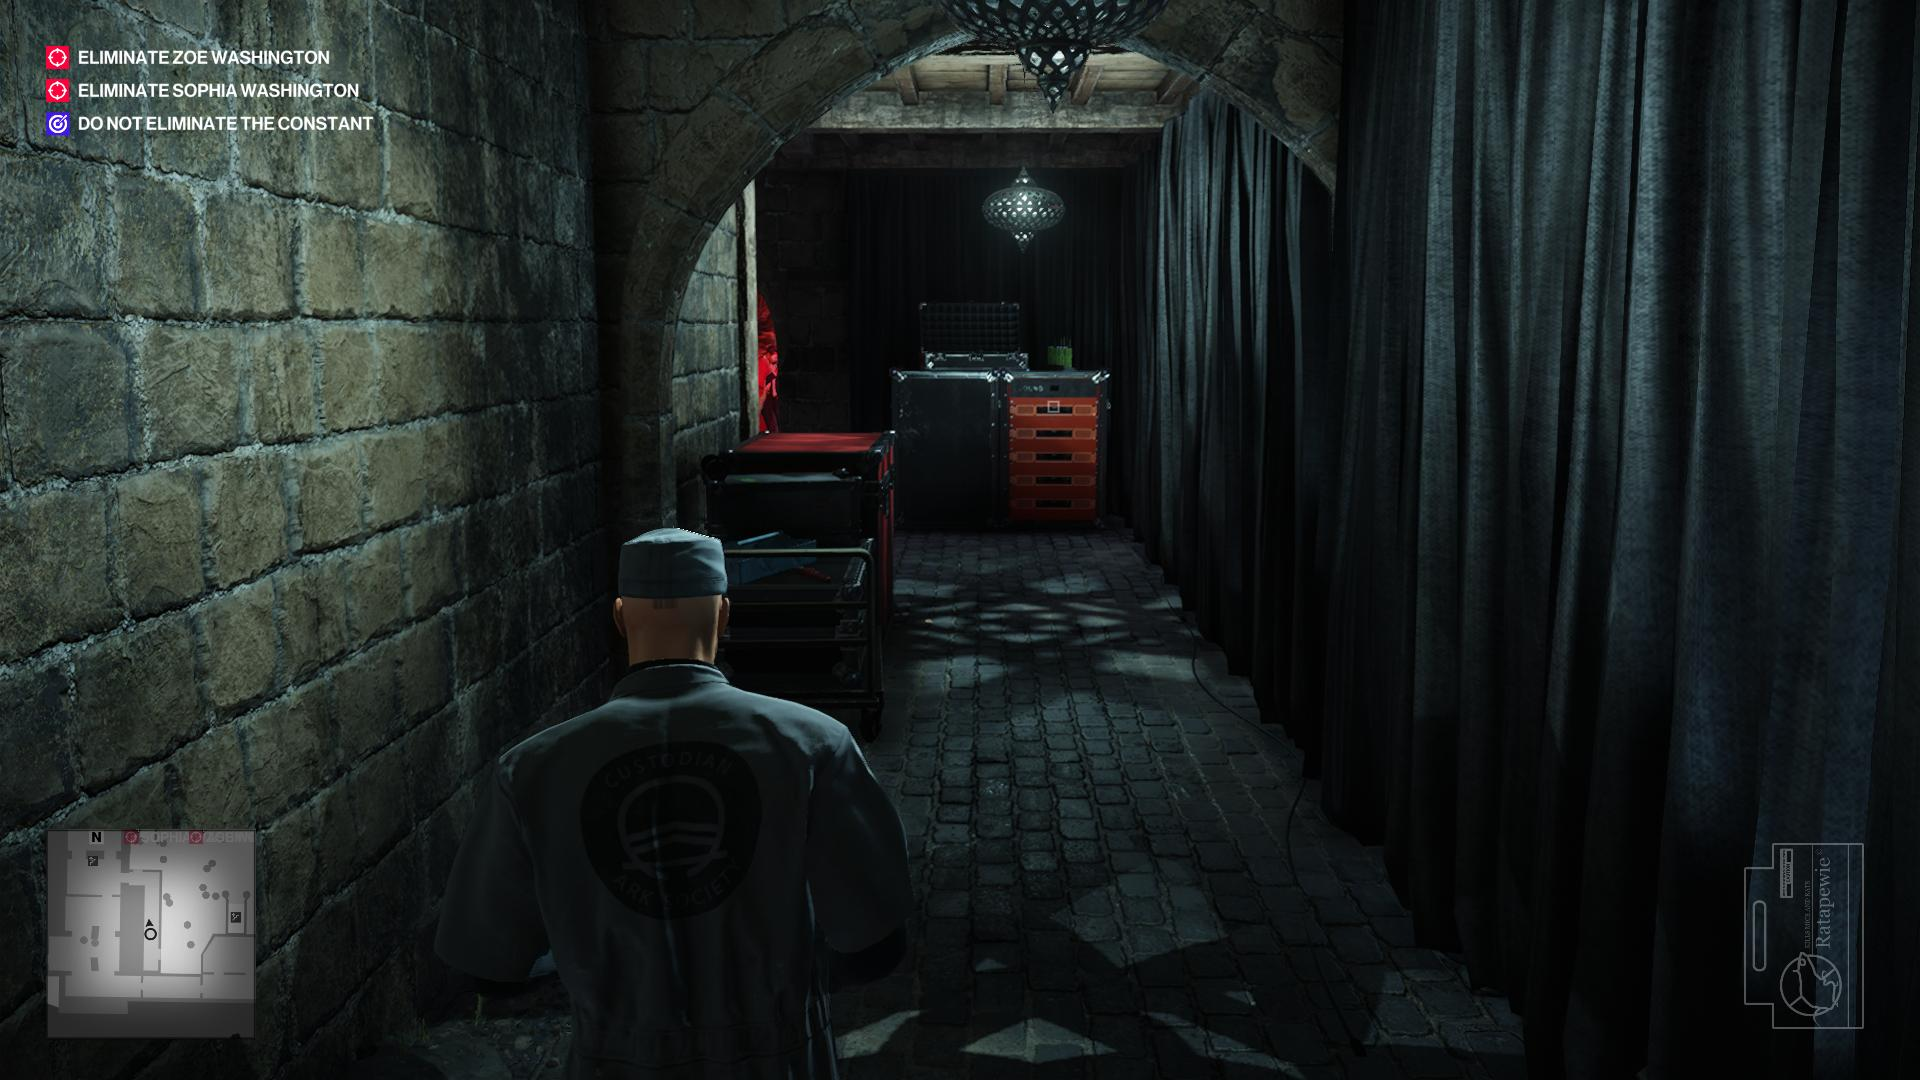 Agent 47 in a maintenance worker's outfit, walking through a corridor. Curtains are to the right and a disco ball is overhead.